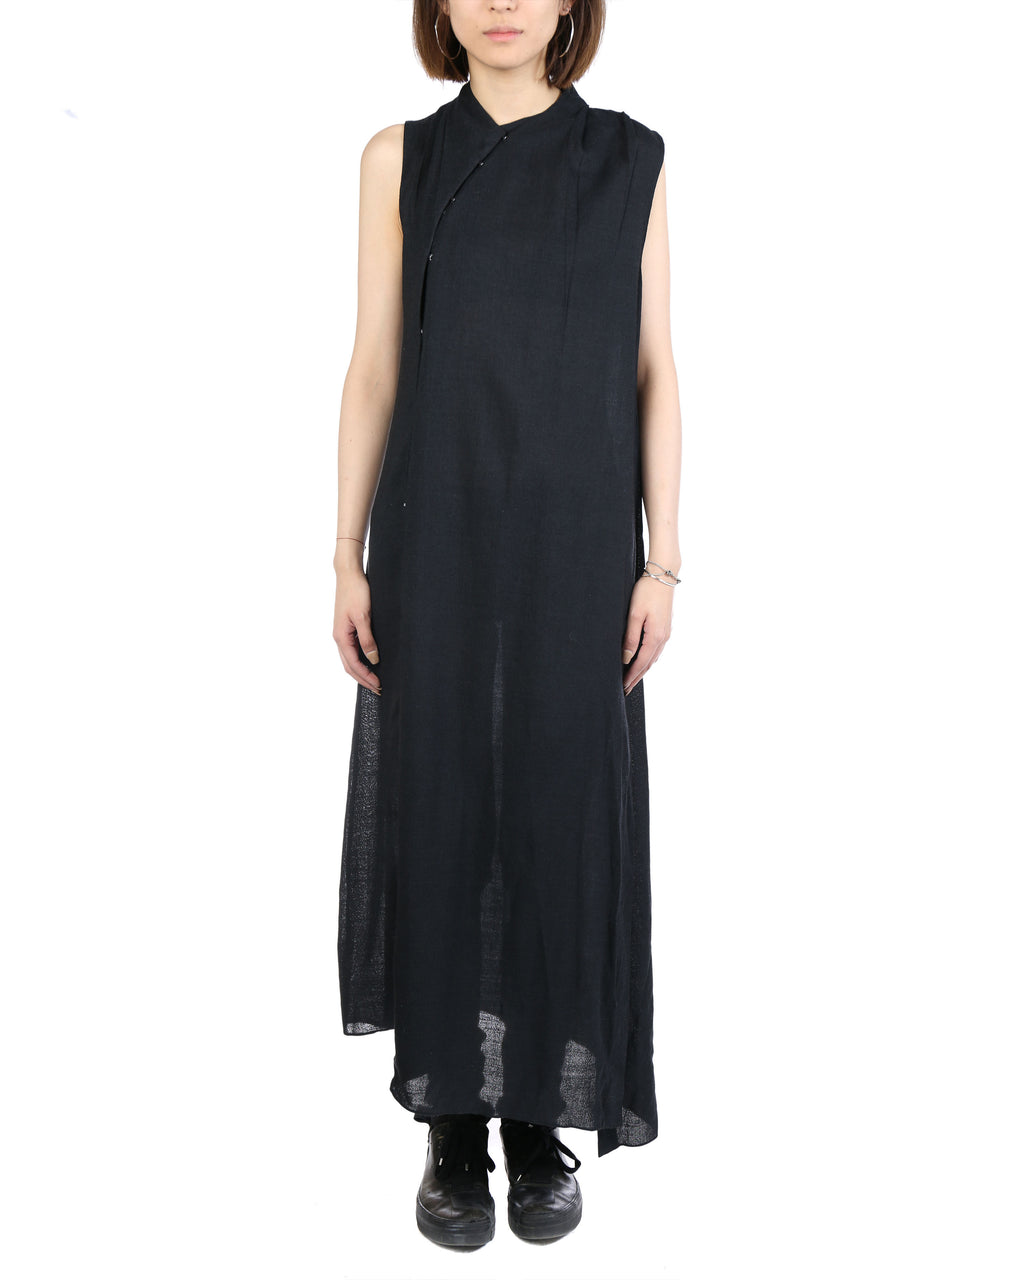 IN AISCE UNISEX ATLANTIDA DRESS